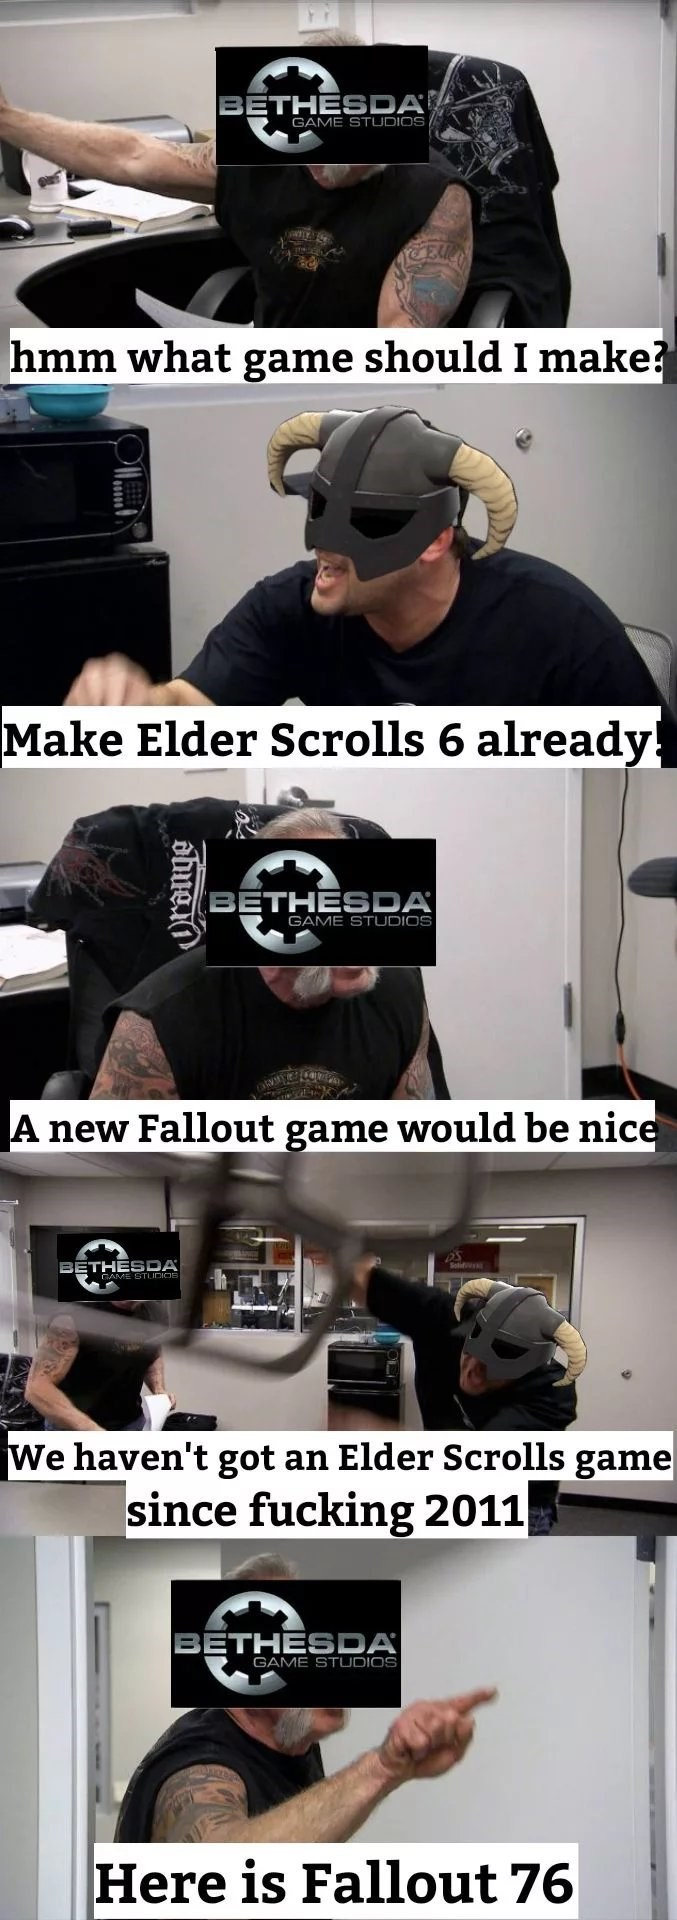 Helmet - BETHESDA GAME STUDIOS hmm what game should I make?? Make Elder Scrolls 6 already! BETHESDA GAME STUDIOS A new Fallout game would be nice BETHESDA We haven't got an Elder Scrolls game since fucking 2011 BETHESDA GAME STUDIOS Here is Fallout 76